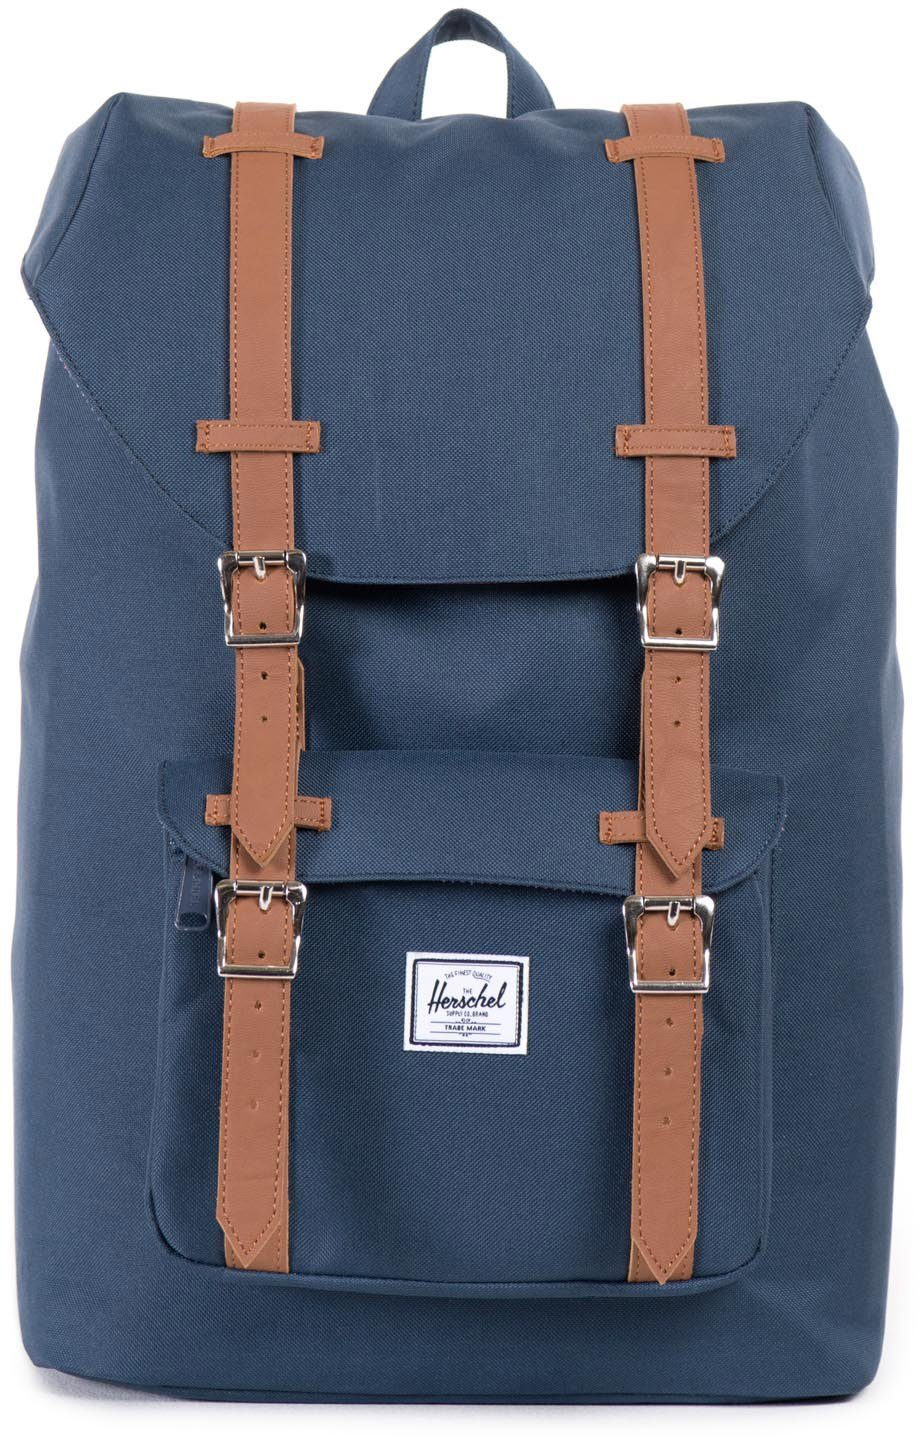 Herschel Rucksack mit Laptopfach, »Little America, Navy, Mid Volume«